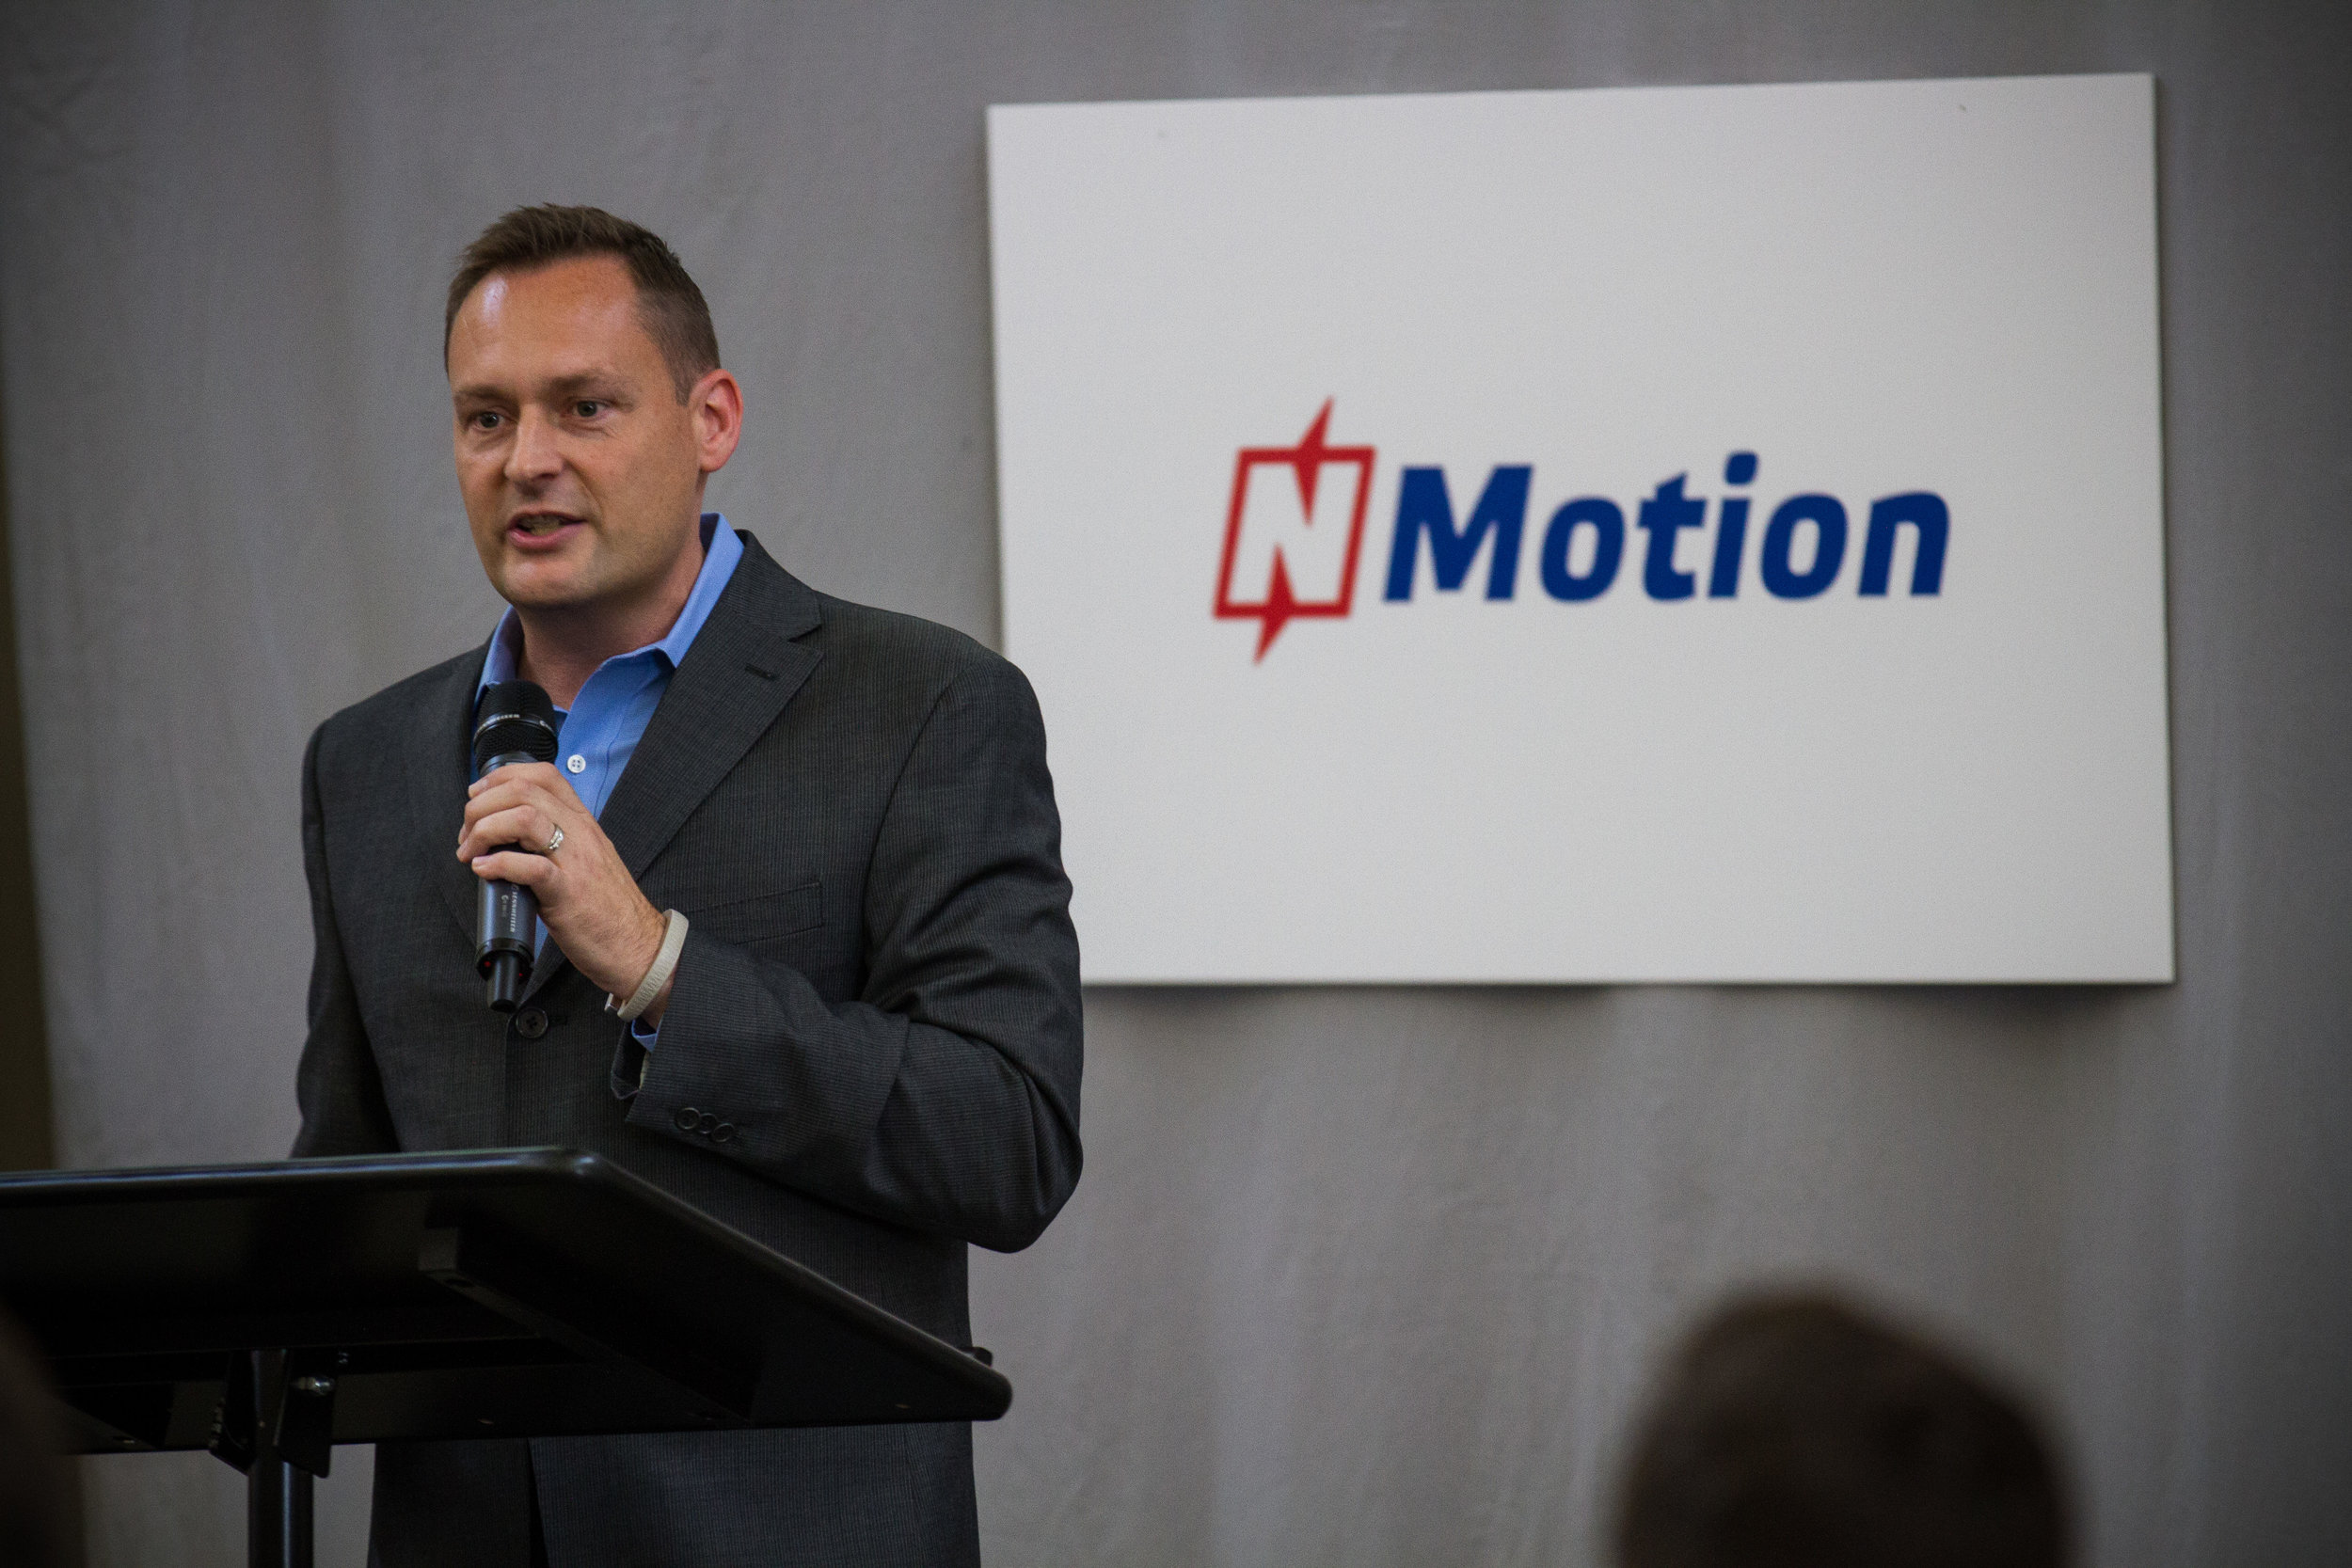 PARTNERS - Learn about the partners making NMotion possible, and how to get involved.